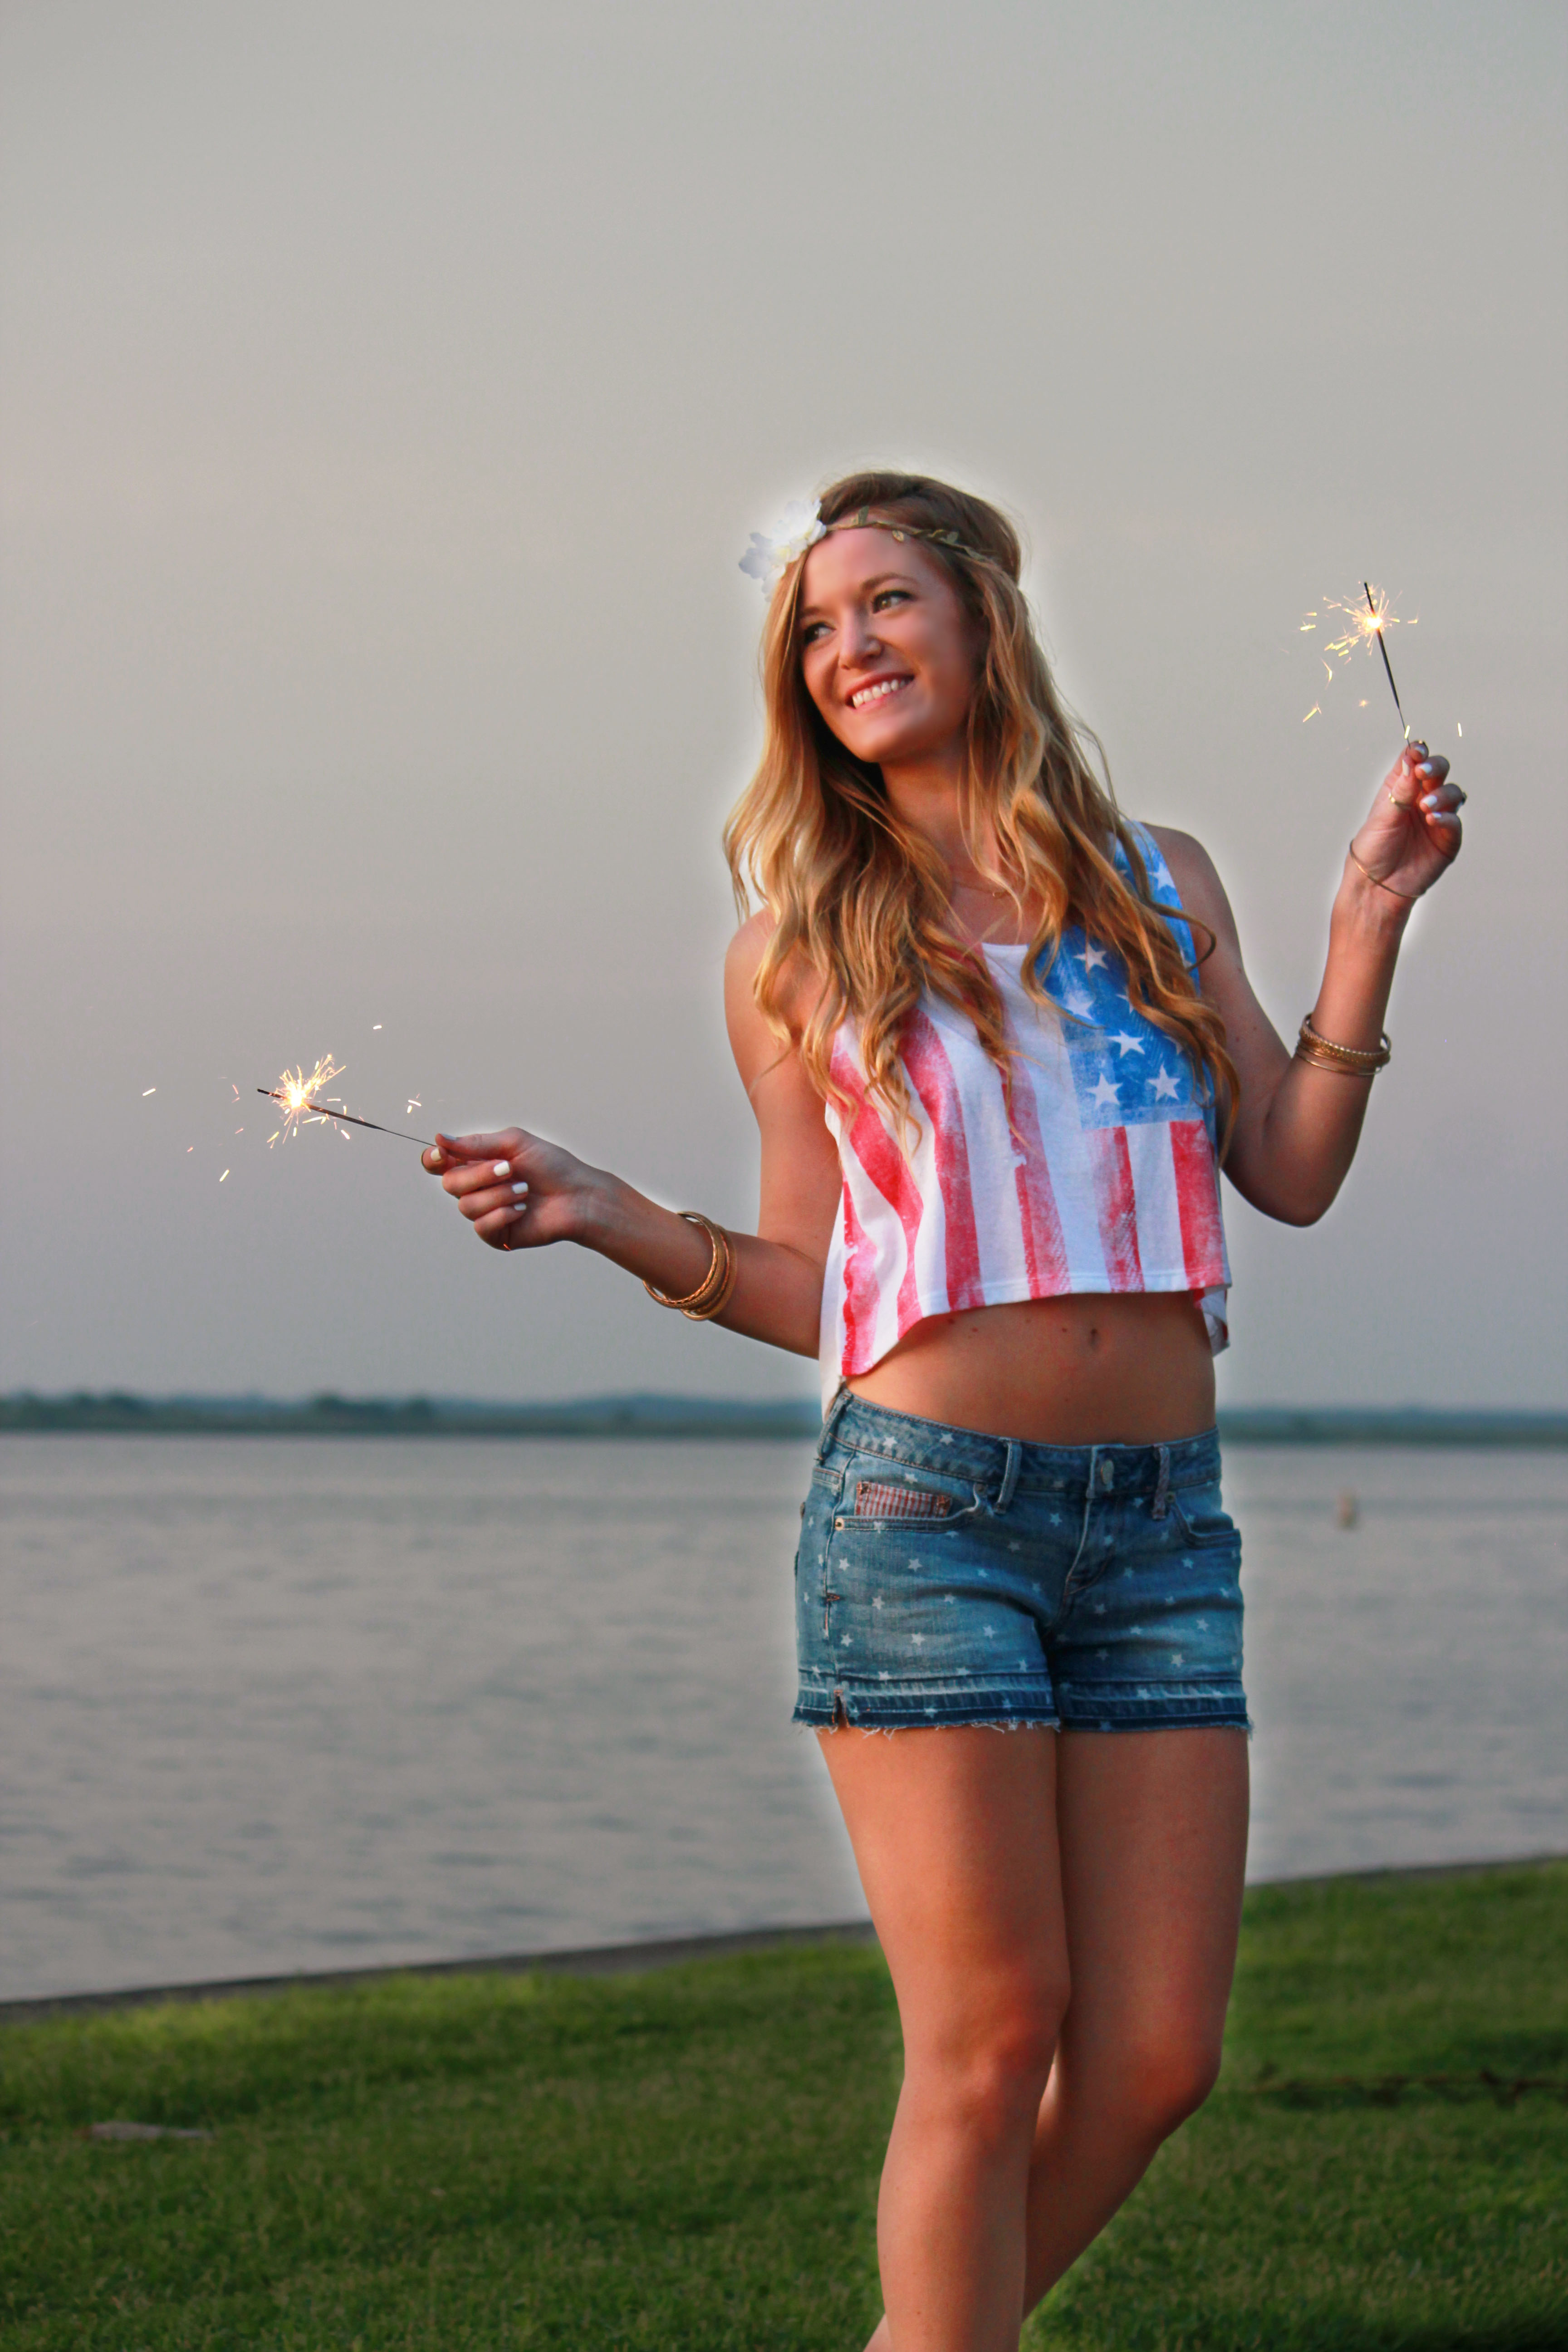 4th of july outfit, aeropostale top, aeropostalr shorts, gianni bini sandals, flower crown, summer outfit, sparkler picture